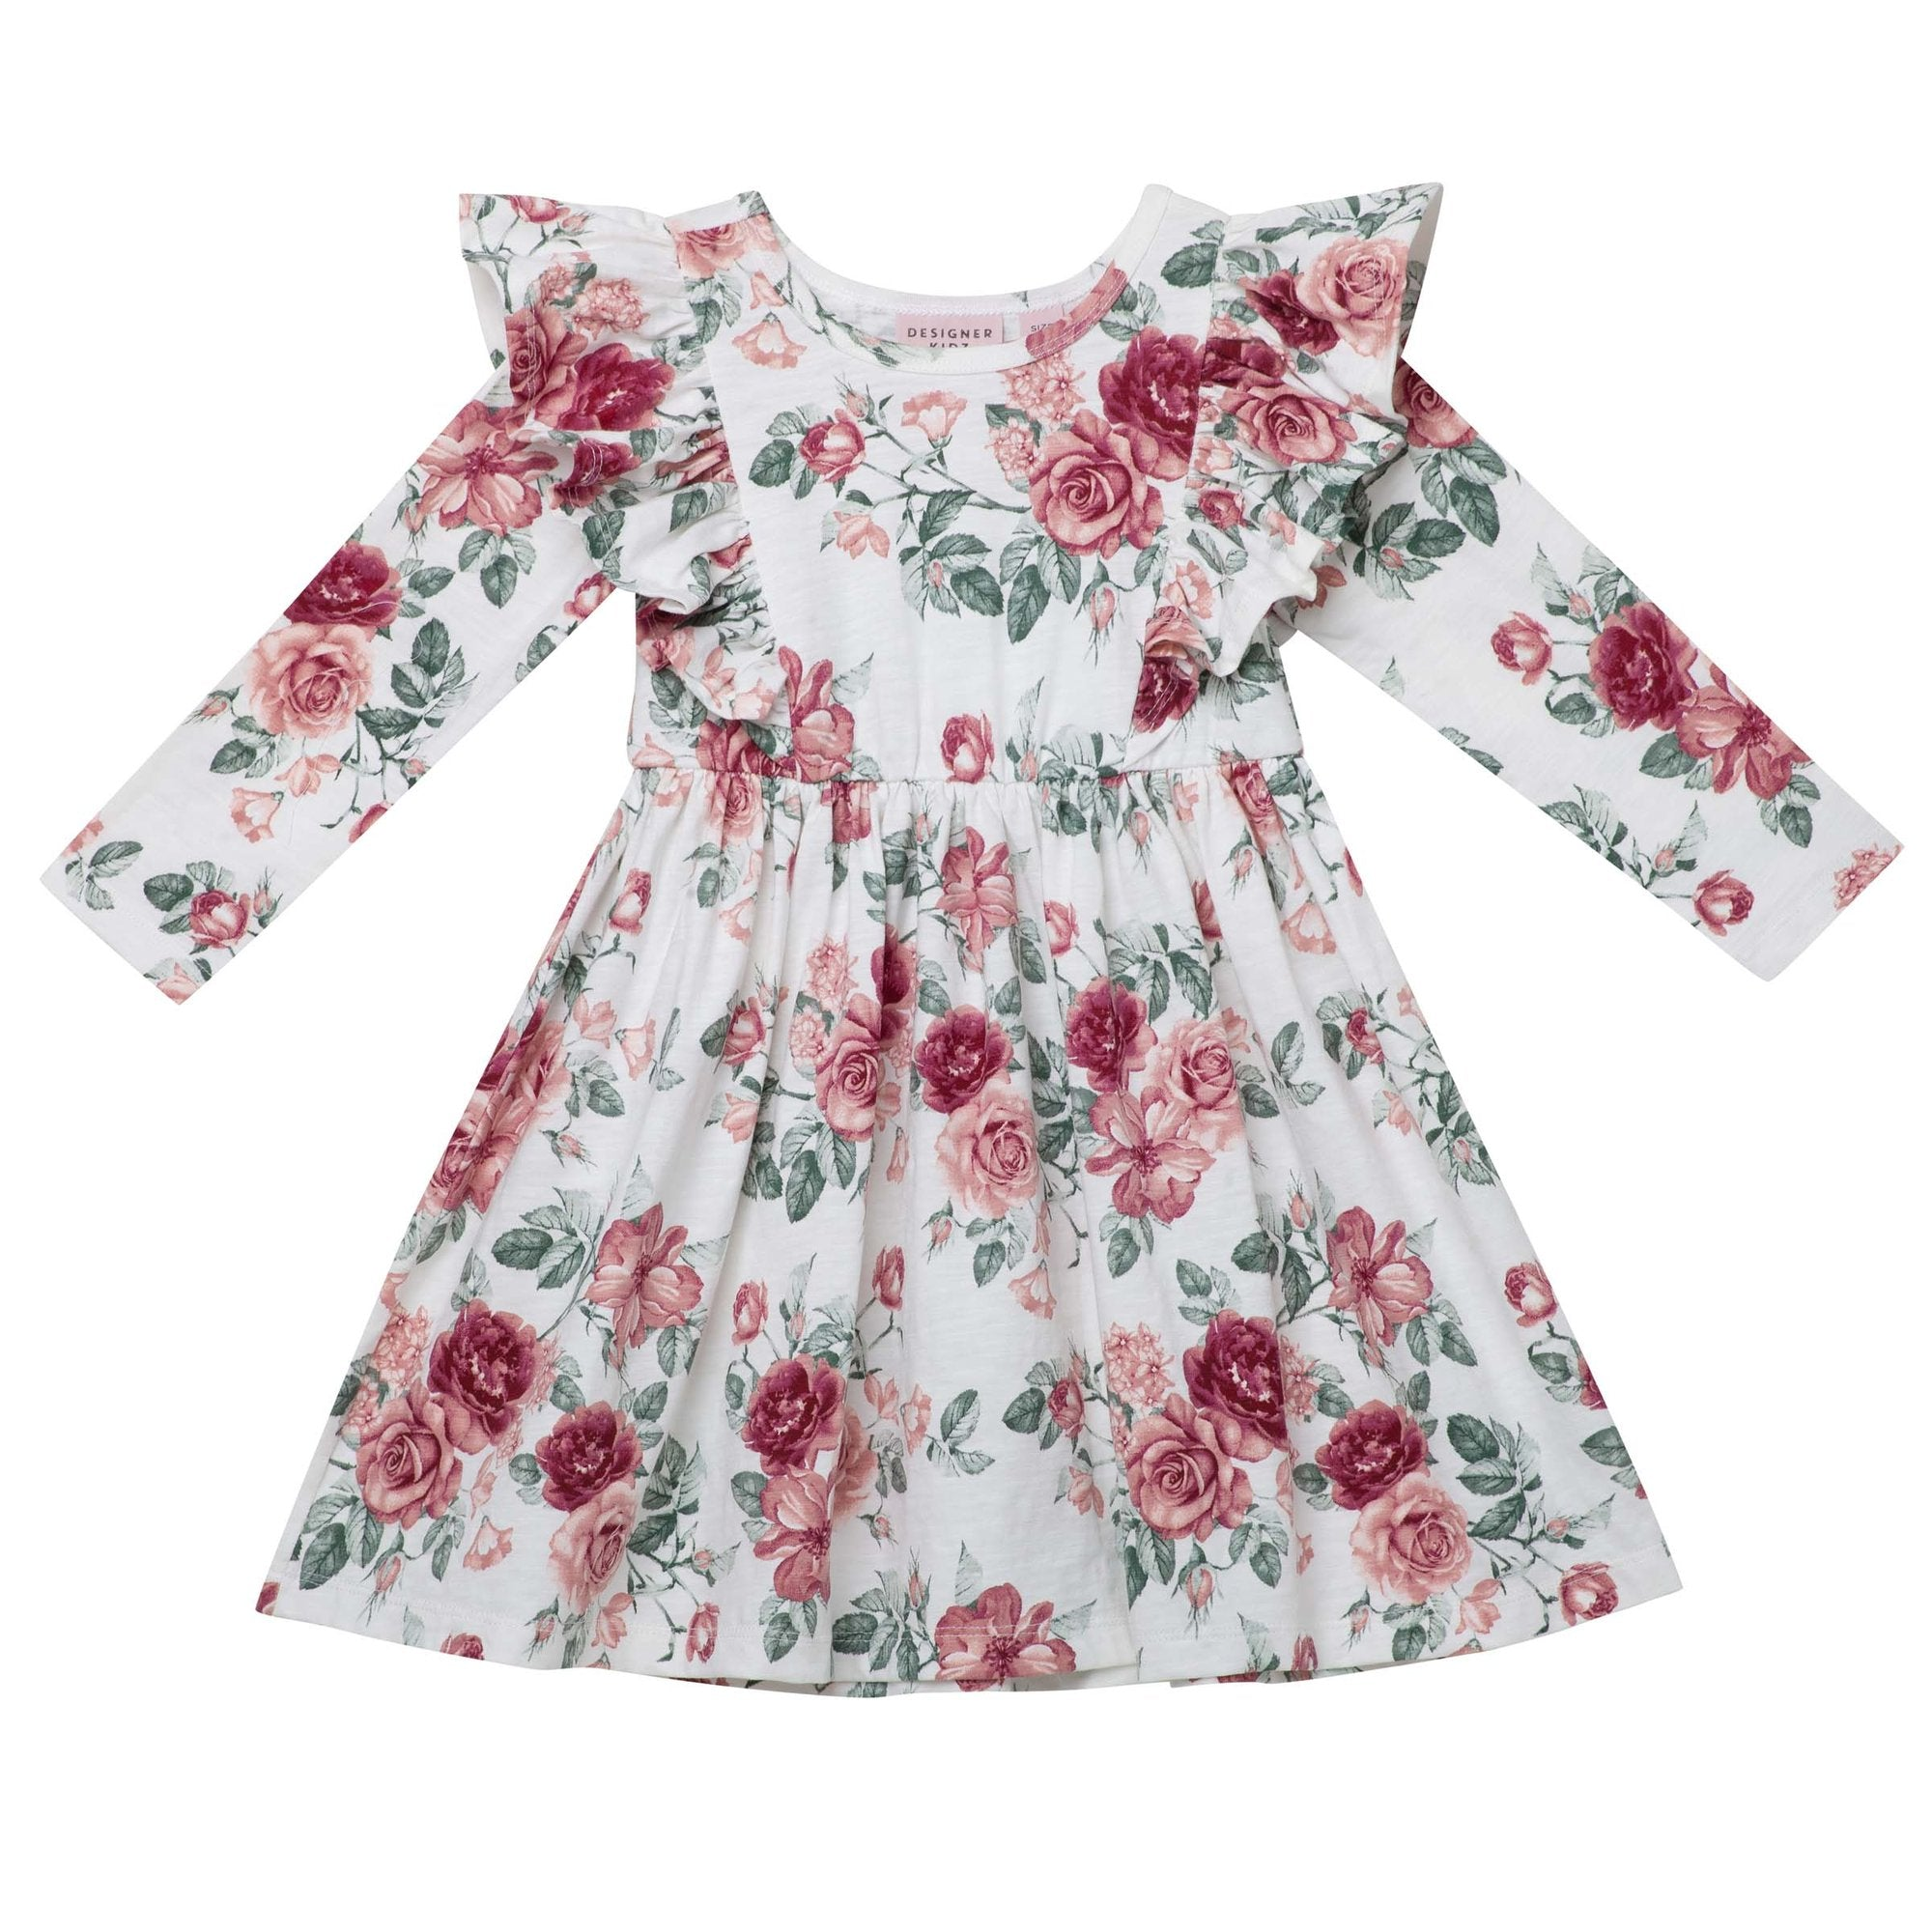 Designer Kidz Audrey floral L/S hazel dress - Tea Rose